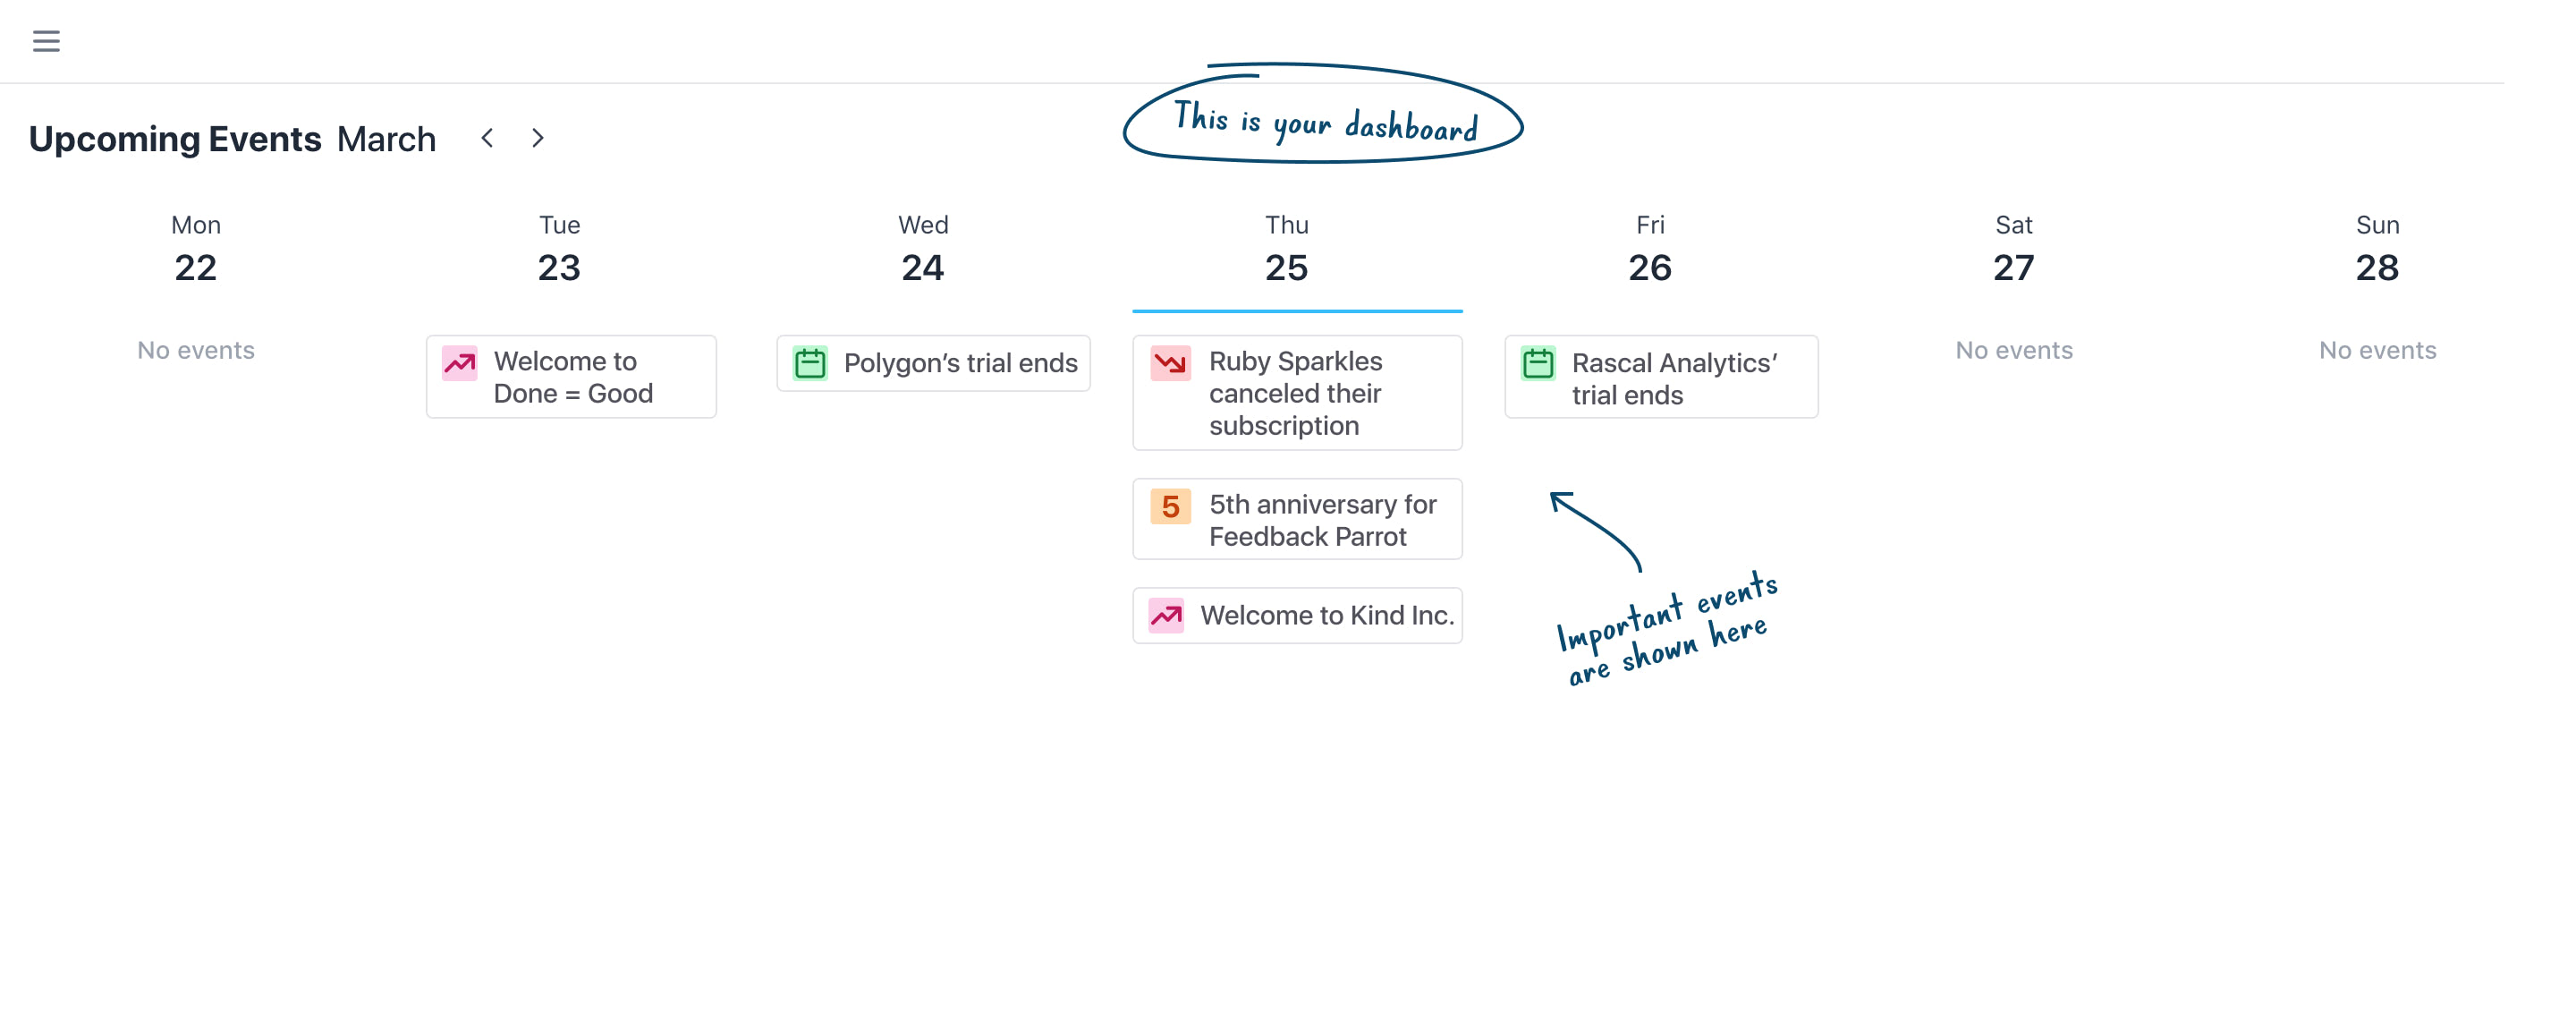 preview of the Seos dashboard showing a day-by-day list of important events